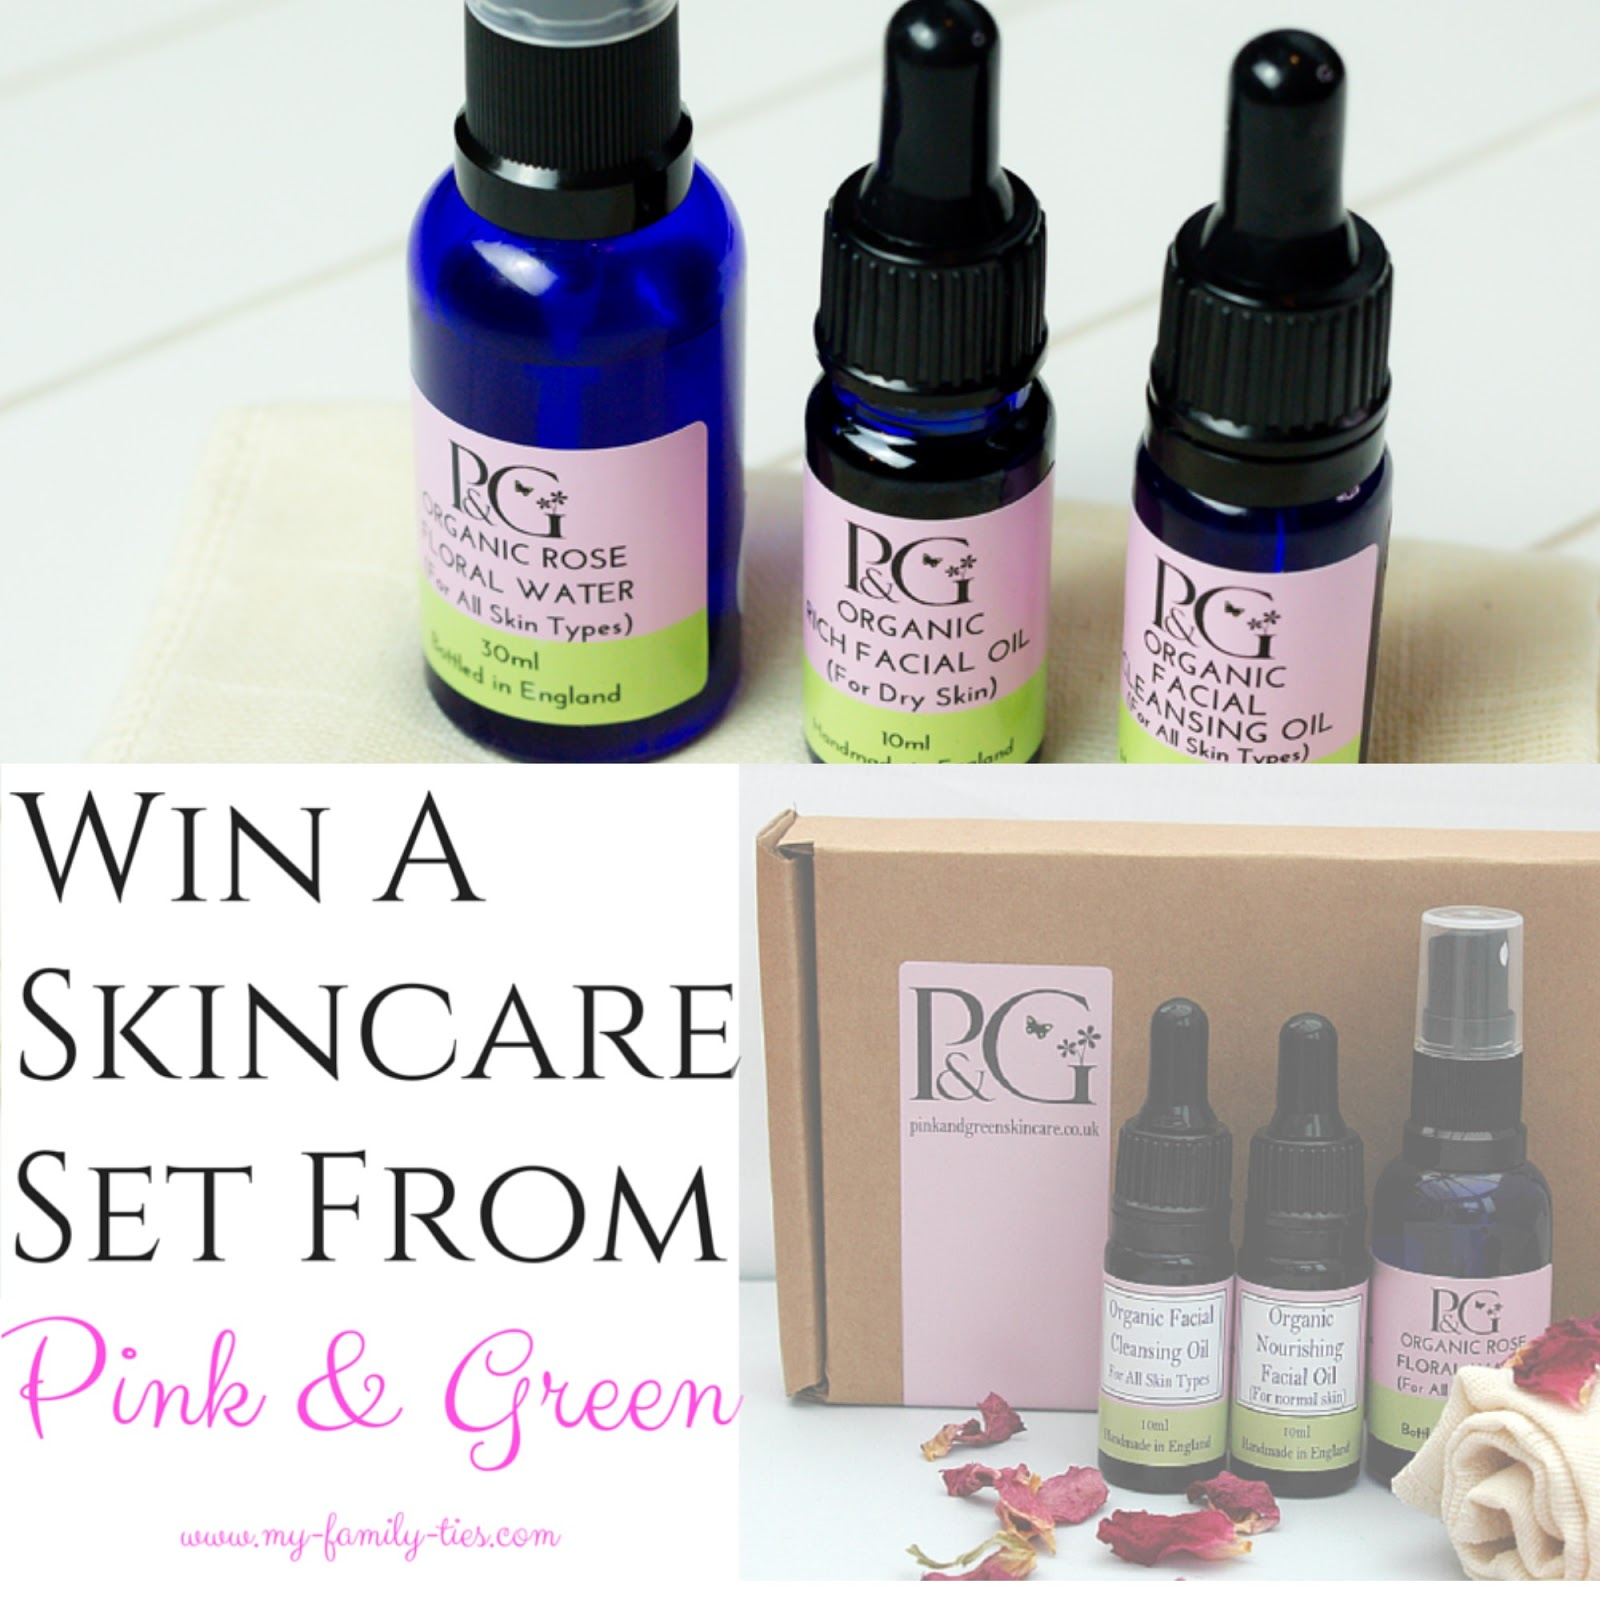 Pink & Green Organic Skincare Collection giveaway photos by My Family Ties Blog www.my-family-ties.com